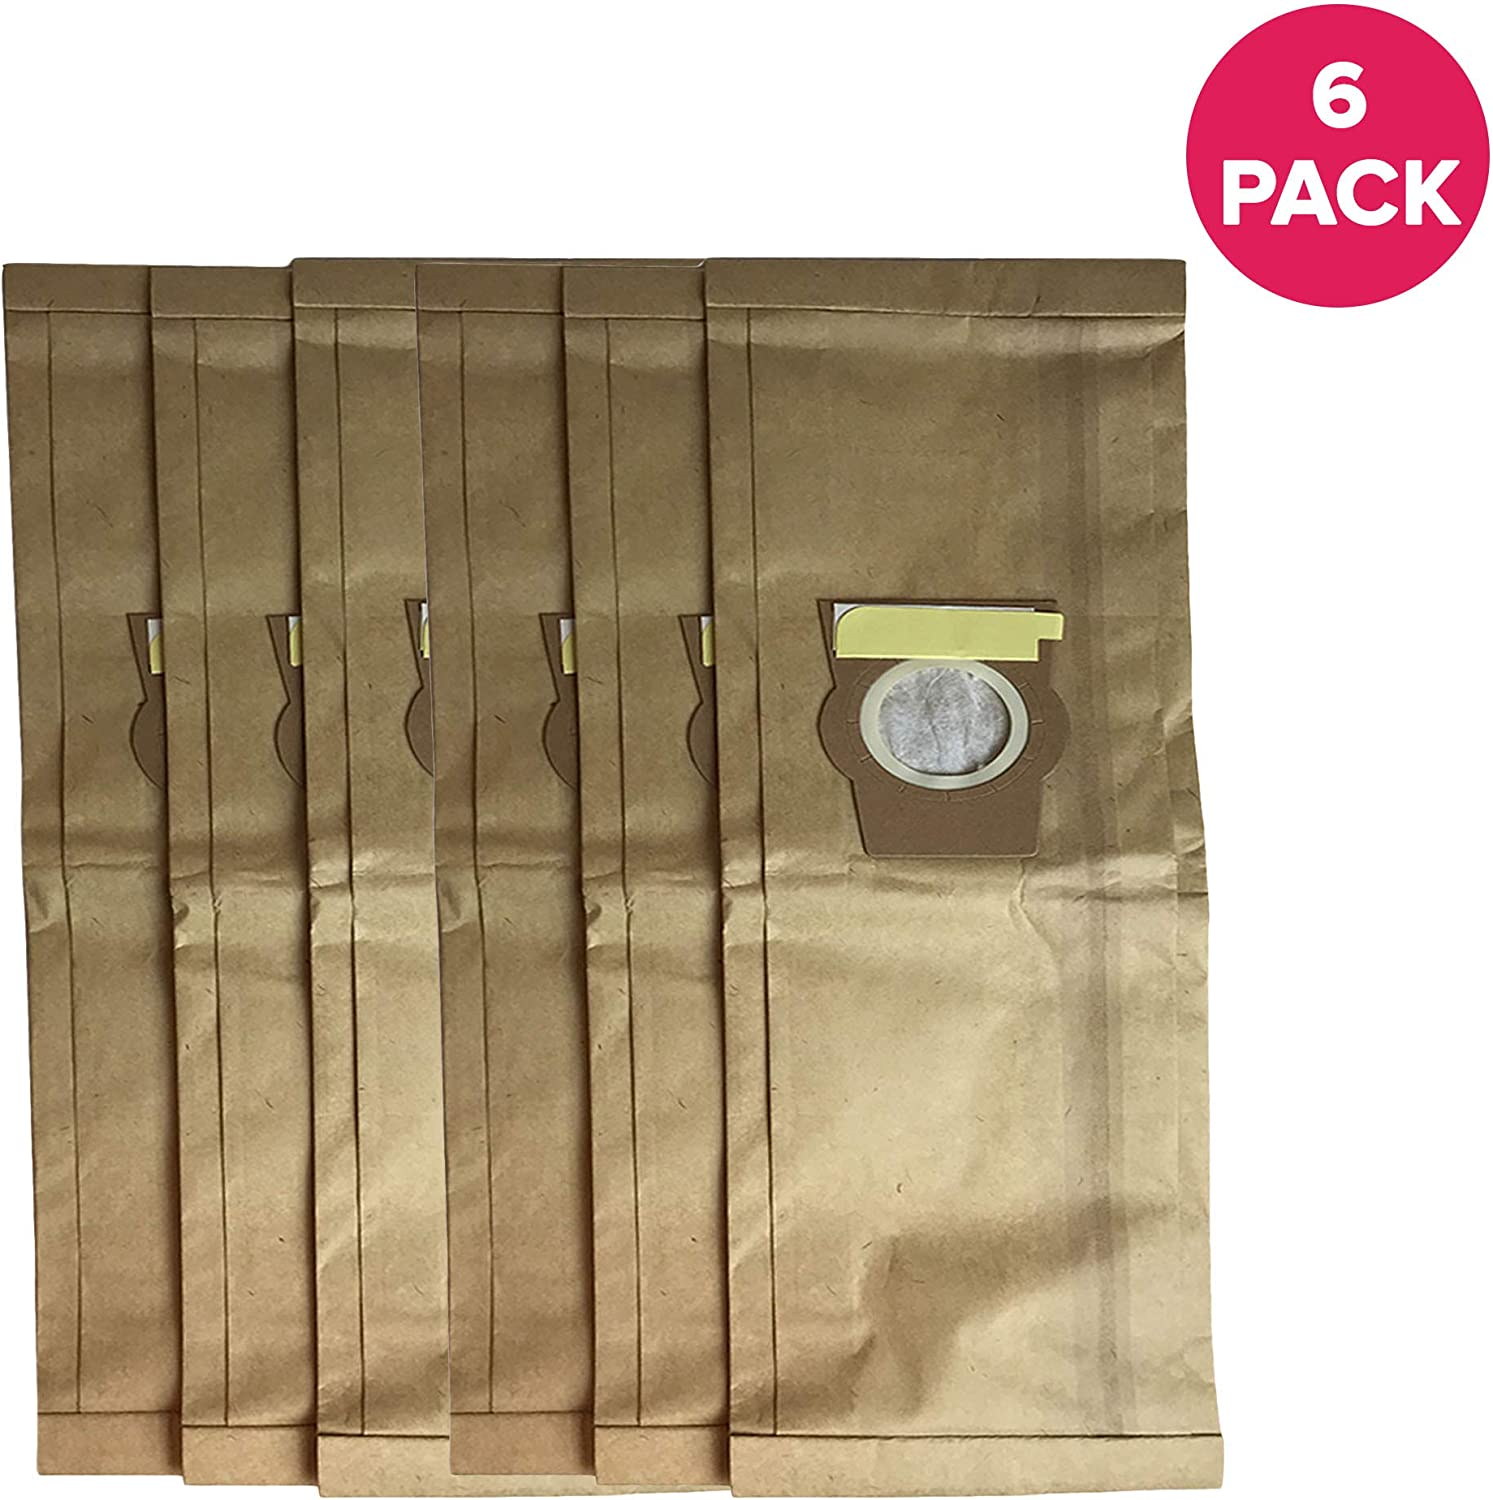 Crucial Vacuum Replacement for Kirby F Paper Bags, Fit Ultimate G and Sentria, Compatible with Part 204808 (6 Pack)